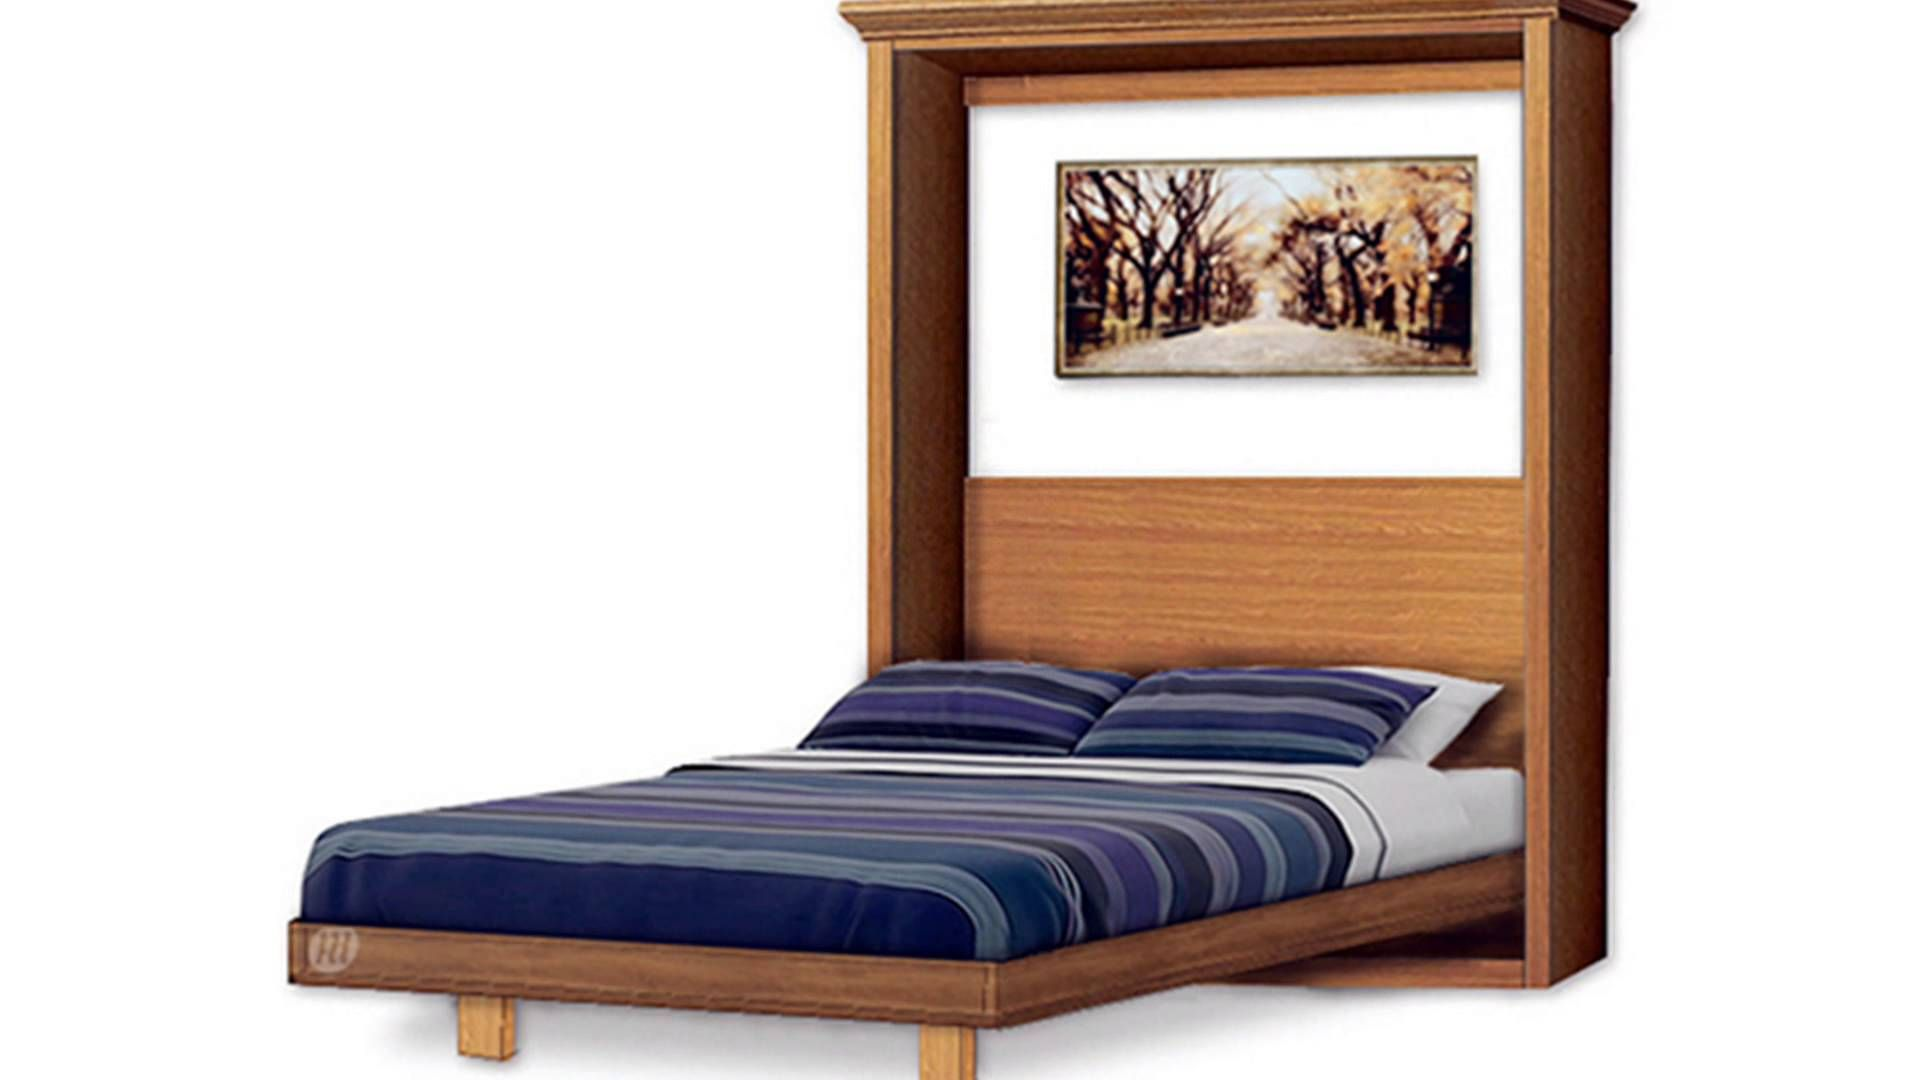 build murphy wall bed yourself under 300 by plans design on wall beds id=42892